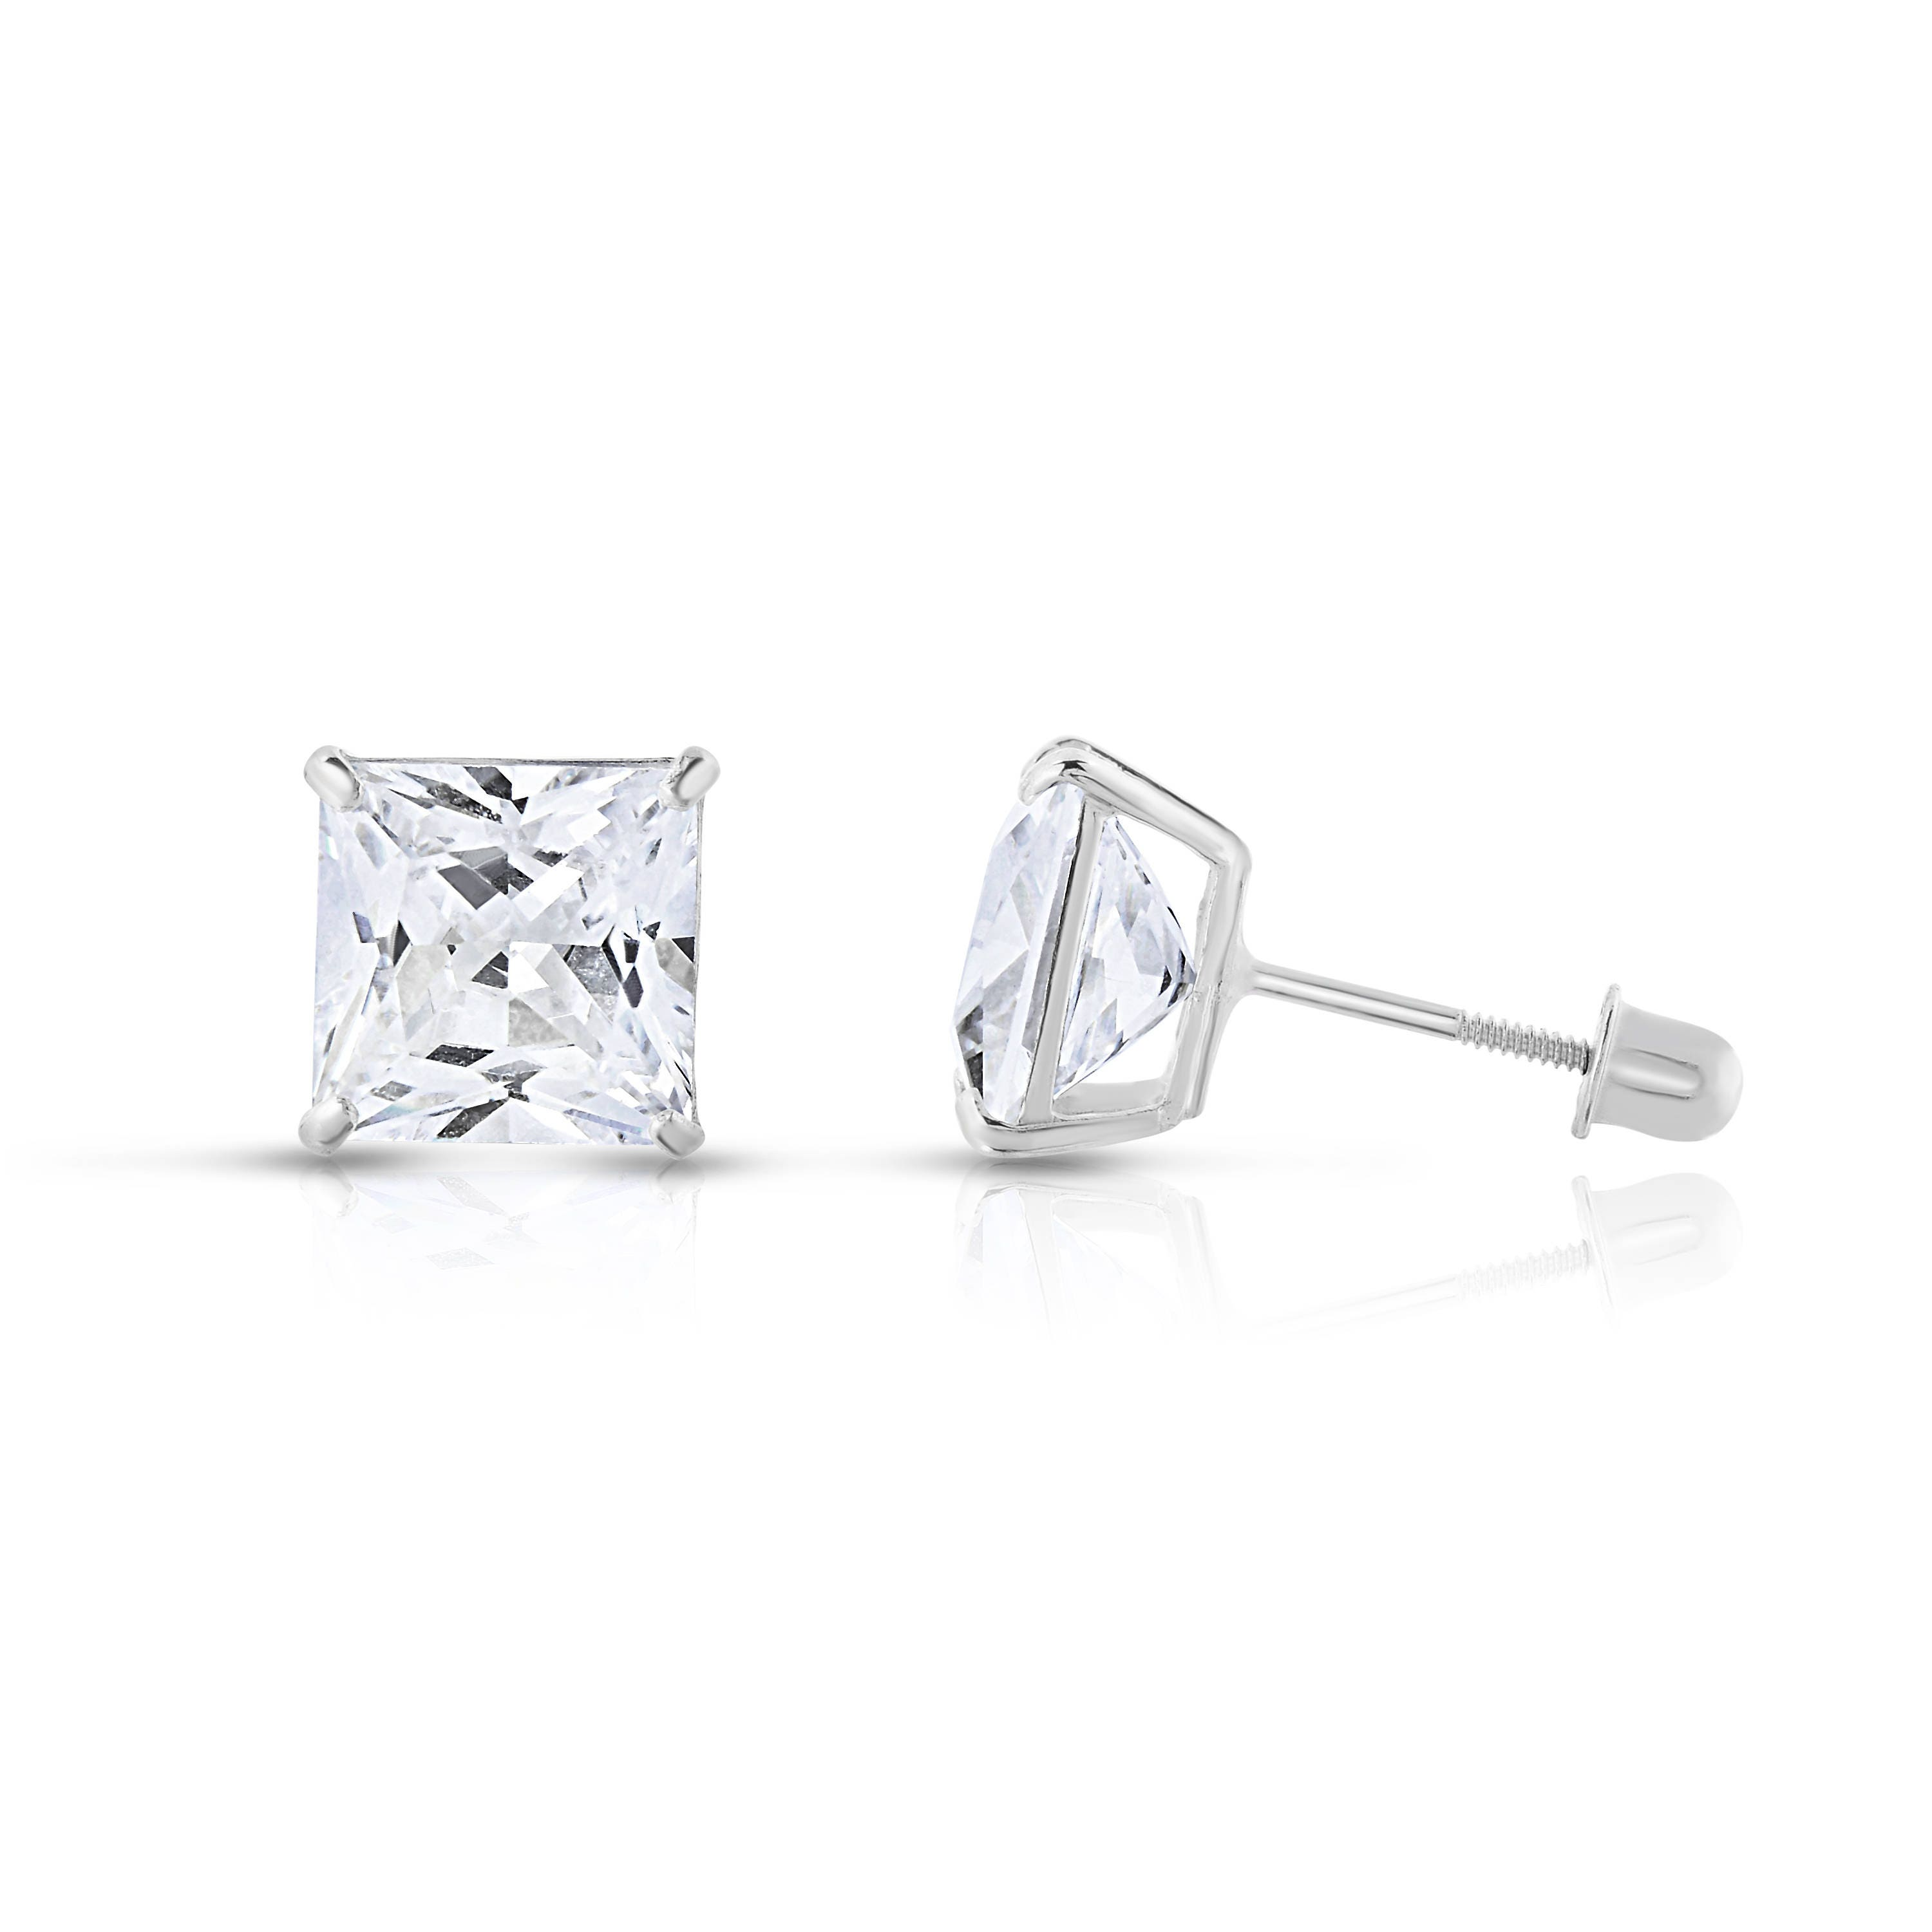 14k White Gold Cubic Zirconia 1.5Ct Round Stud Screw Back Earrings 5mm